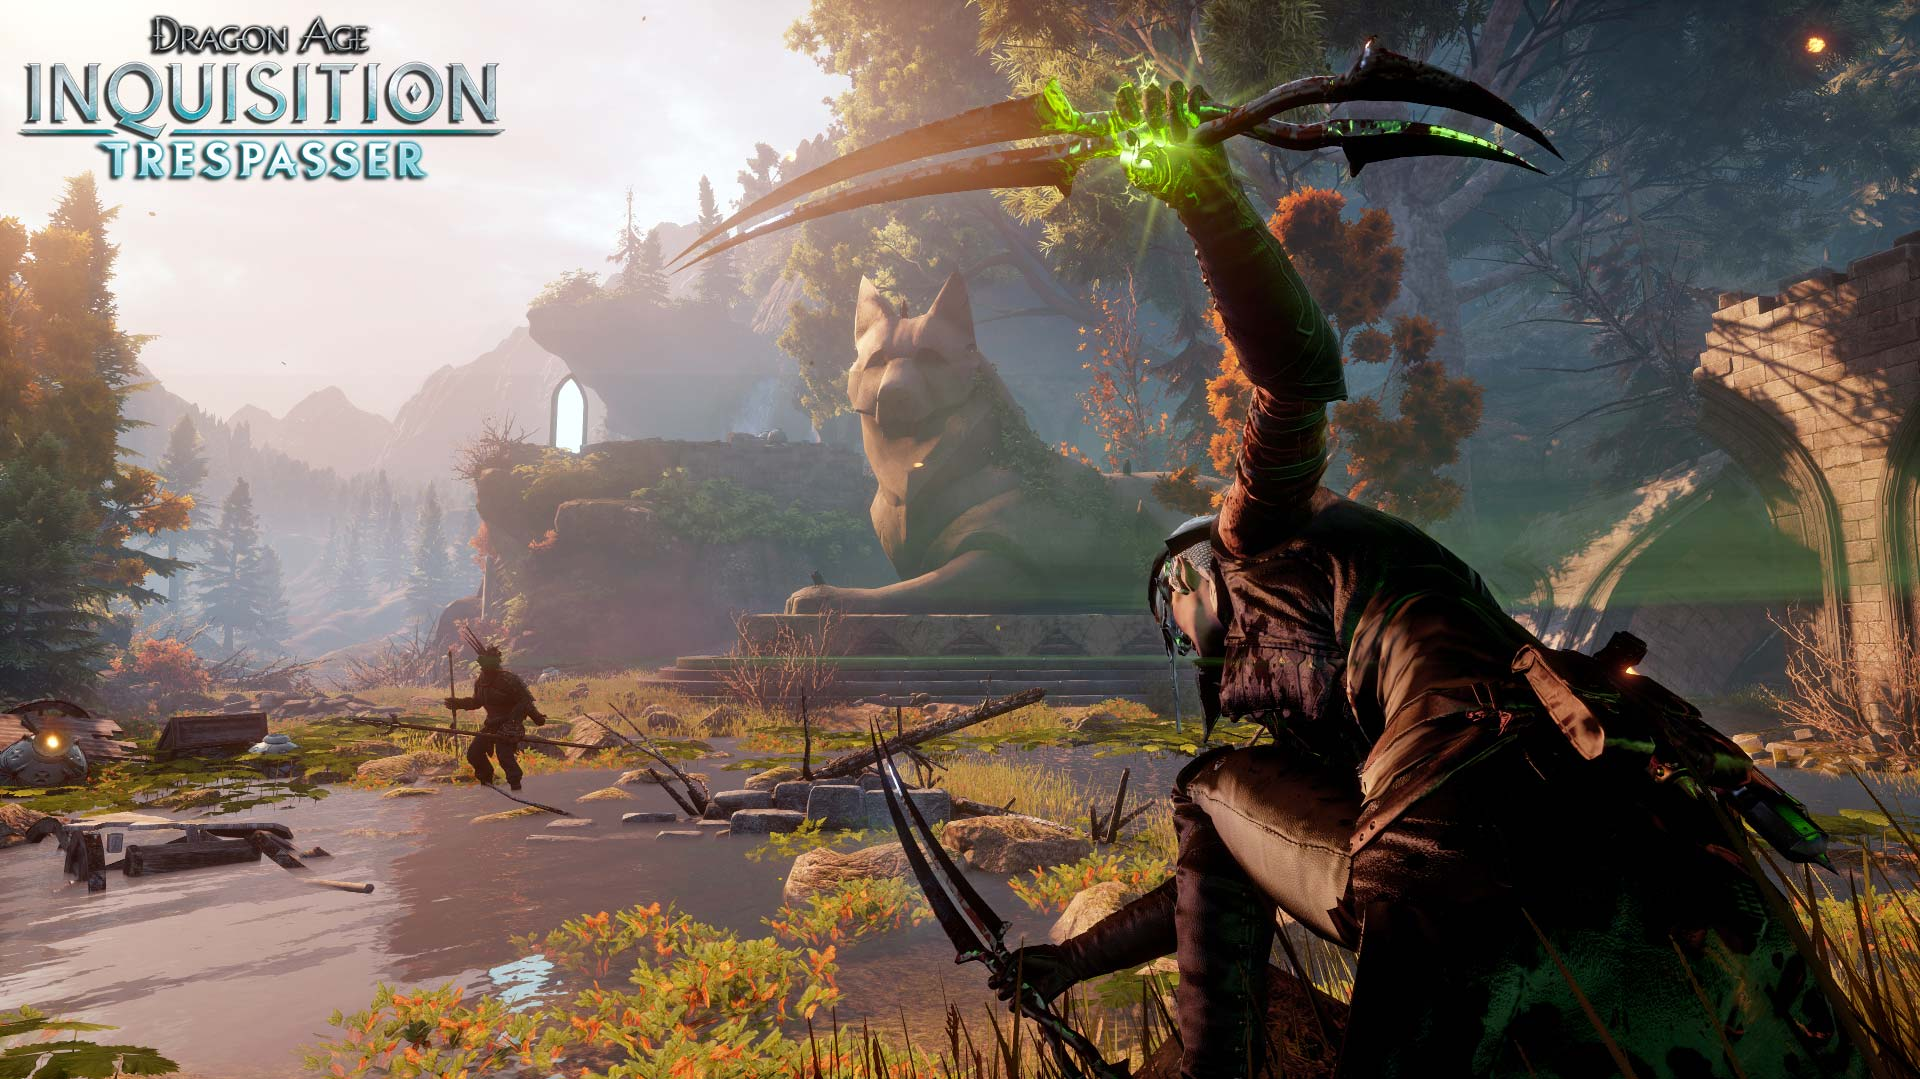 Dragon Age Inquisition Won't Launch, Does Not Work, Does Not Install